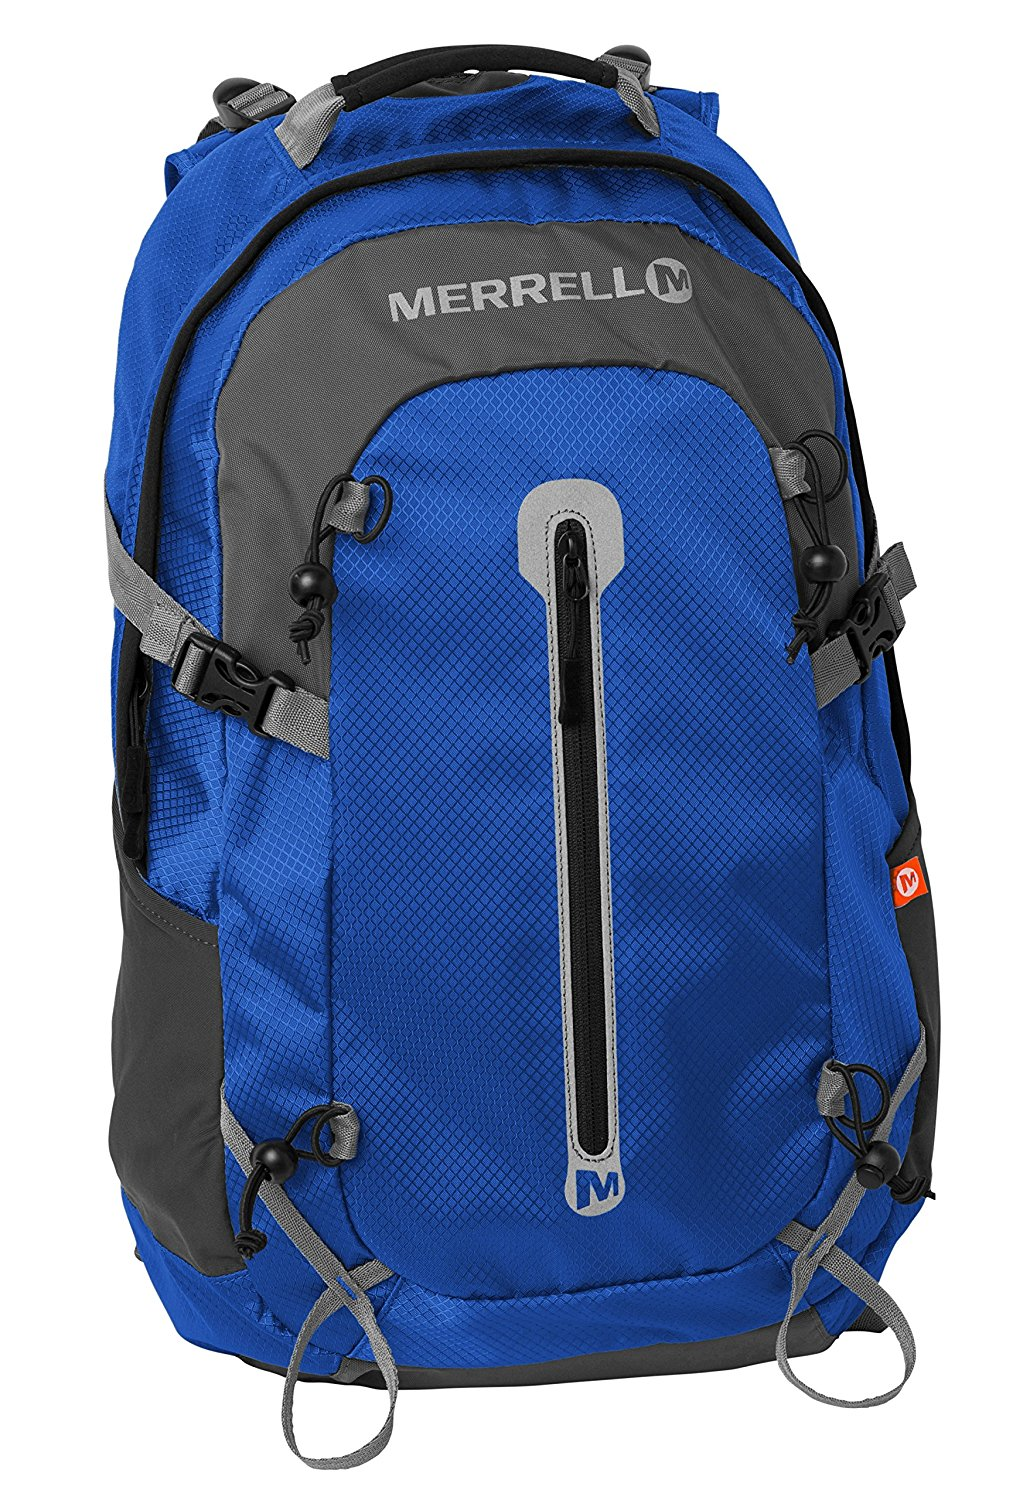 421c25e493 Cheap Merrell Backpack, find Merrell Backpack deals on line at ...